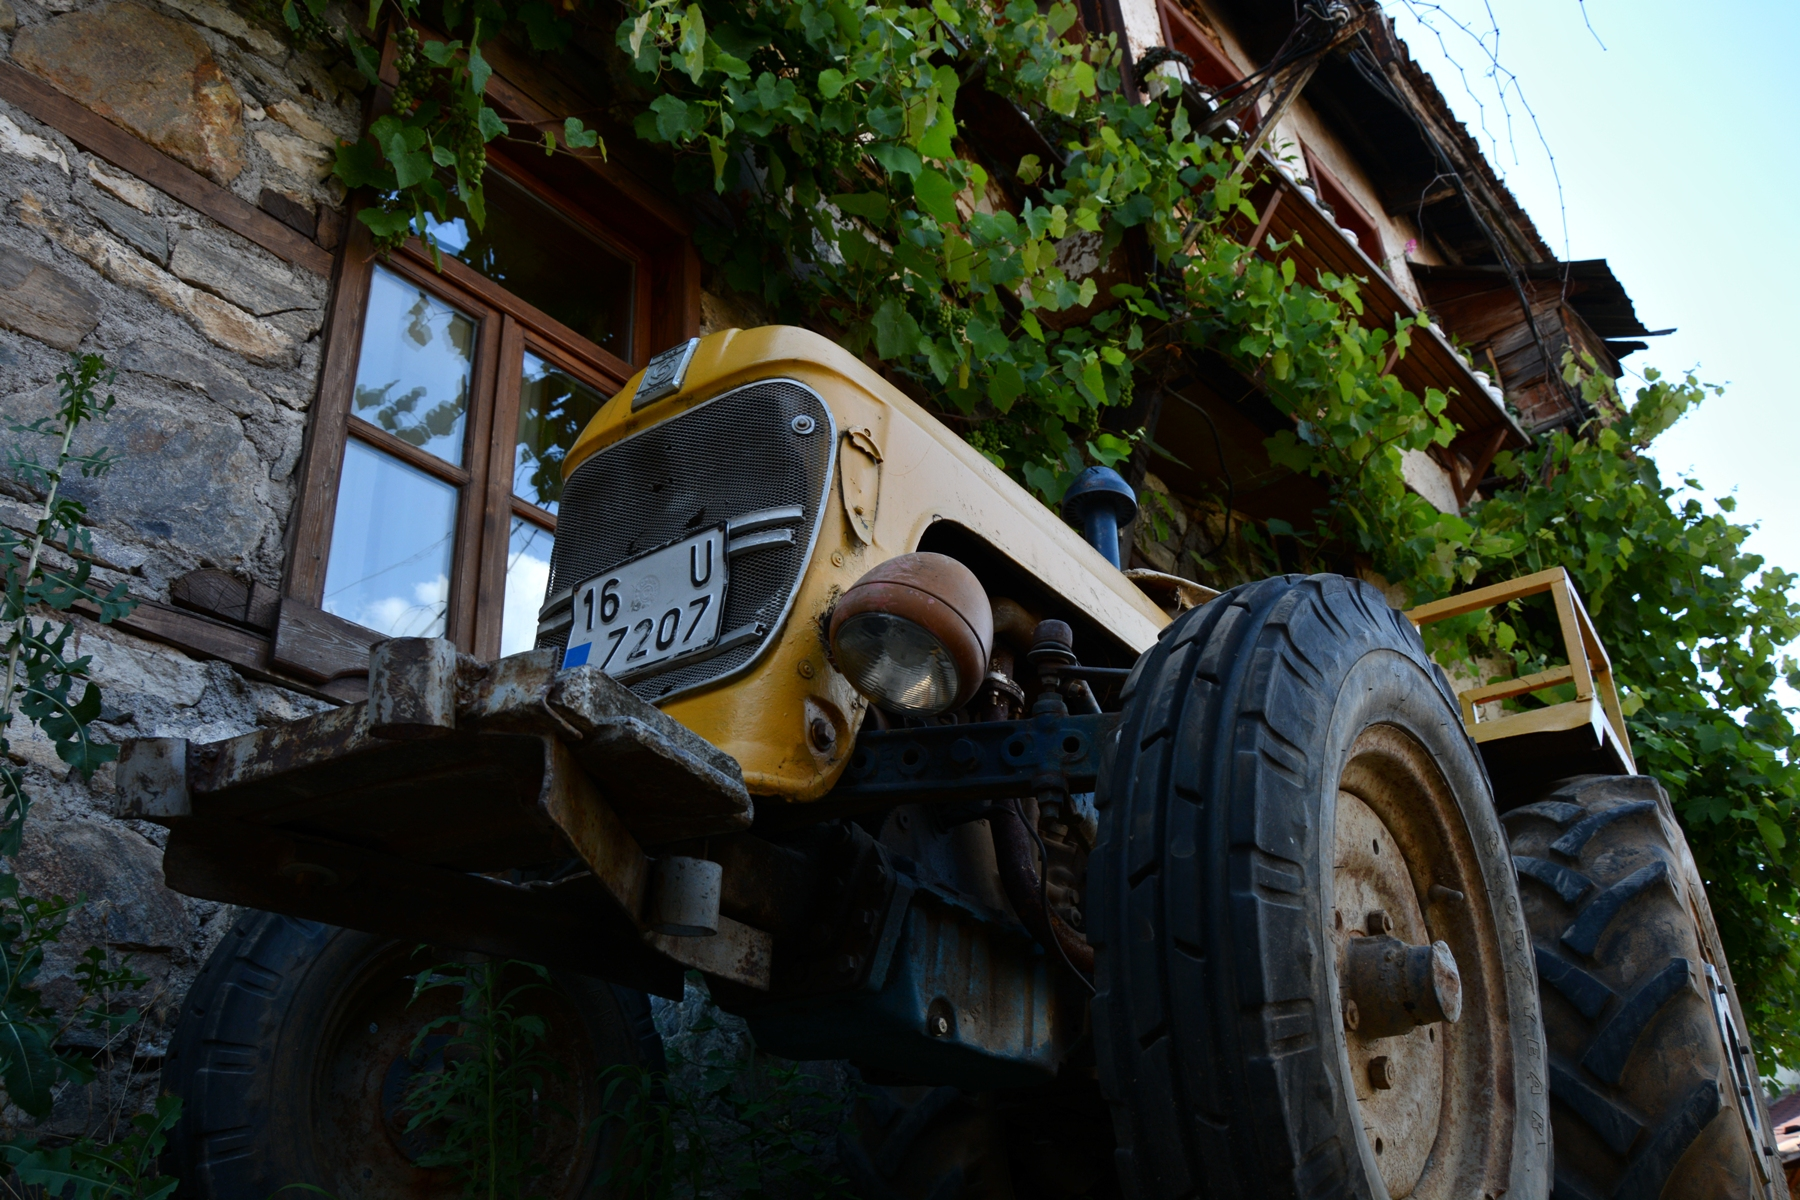 Tractor outside a house in the village